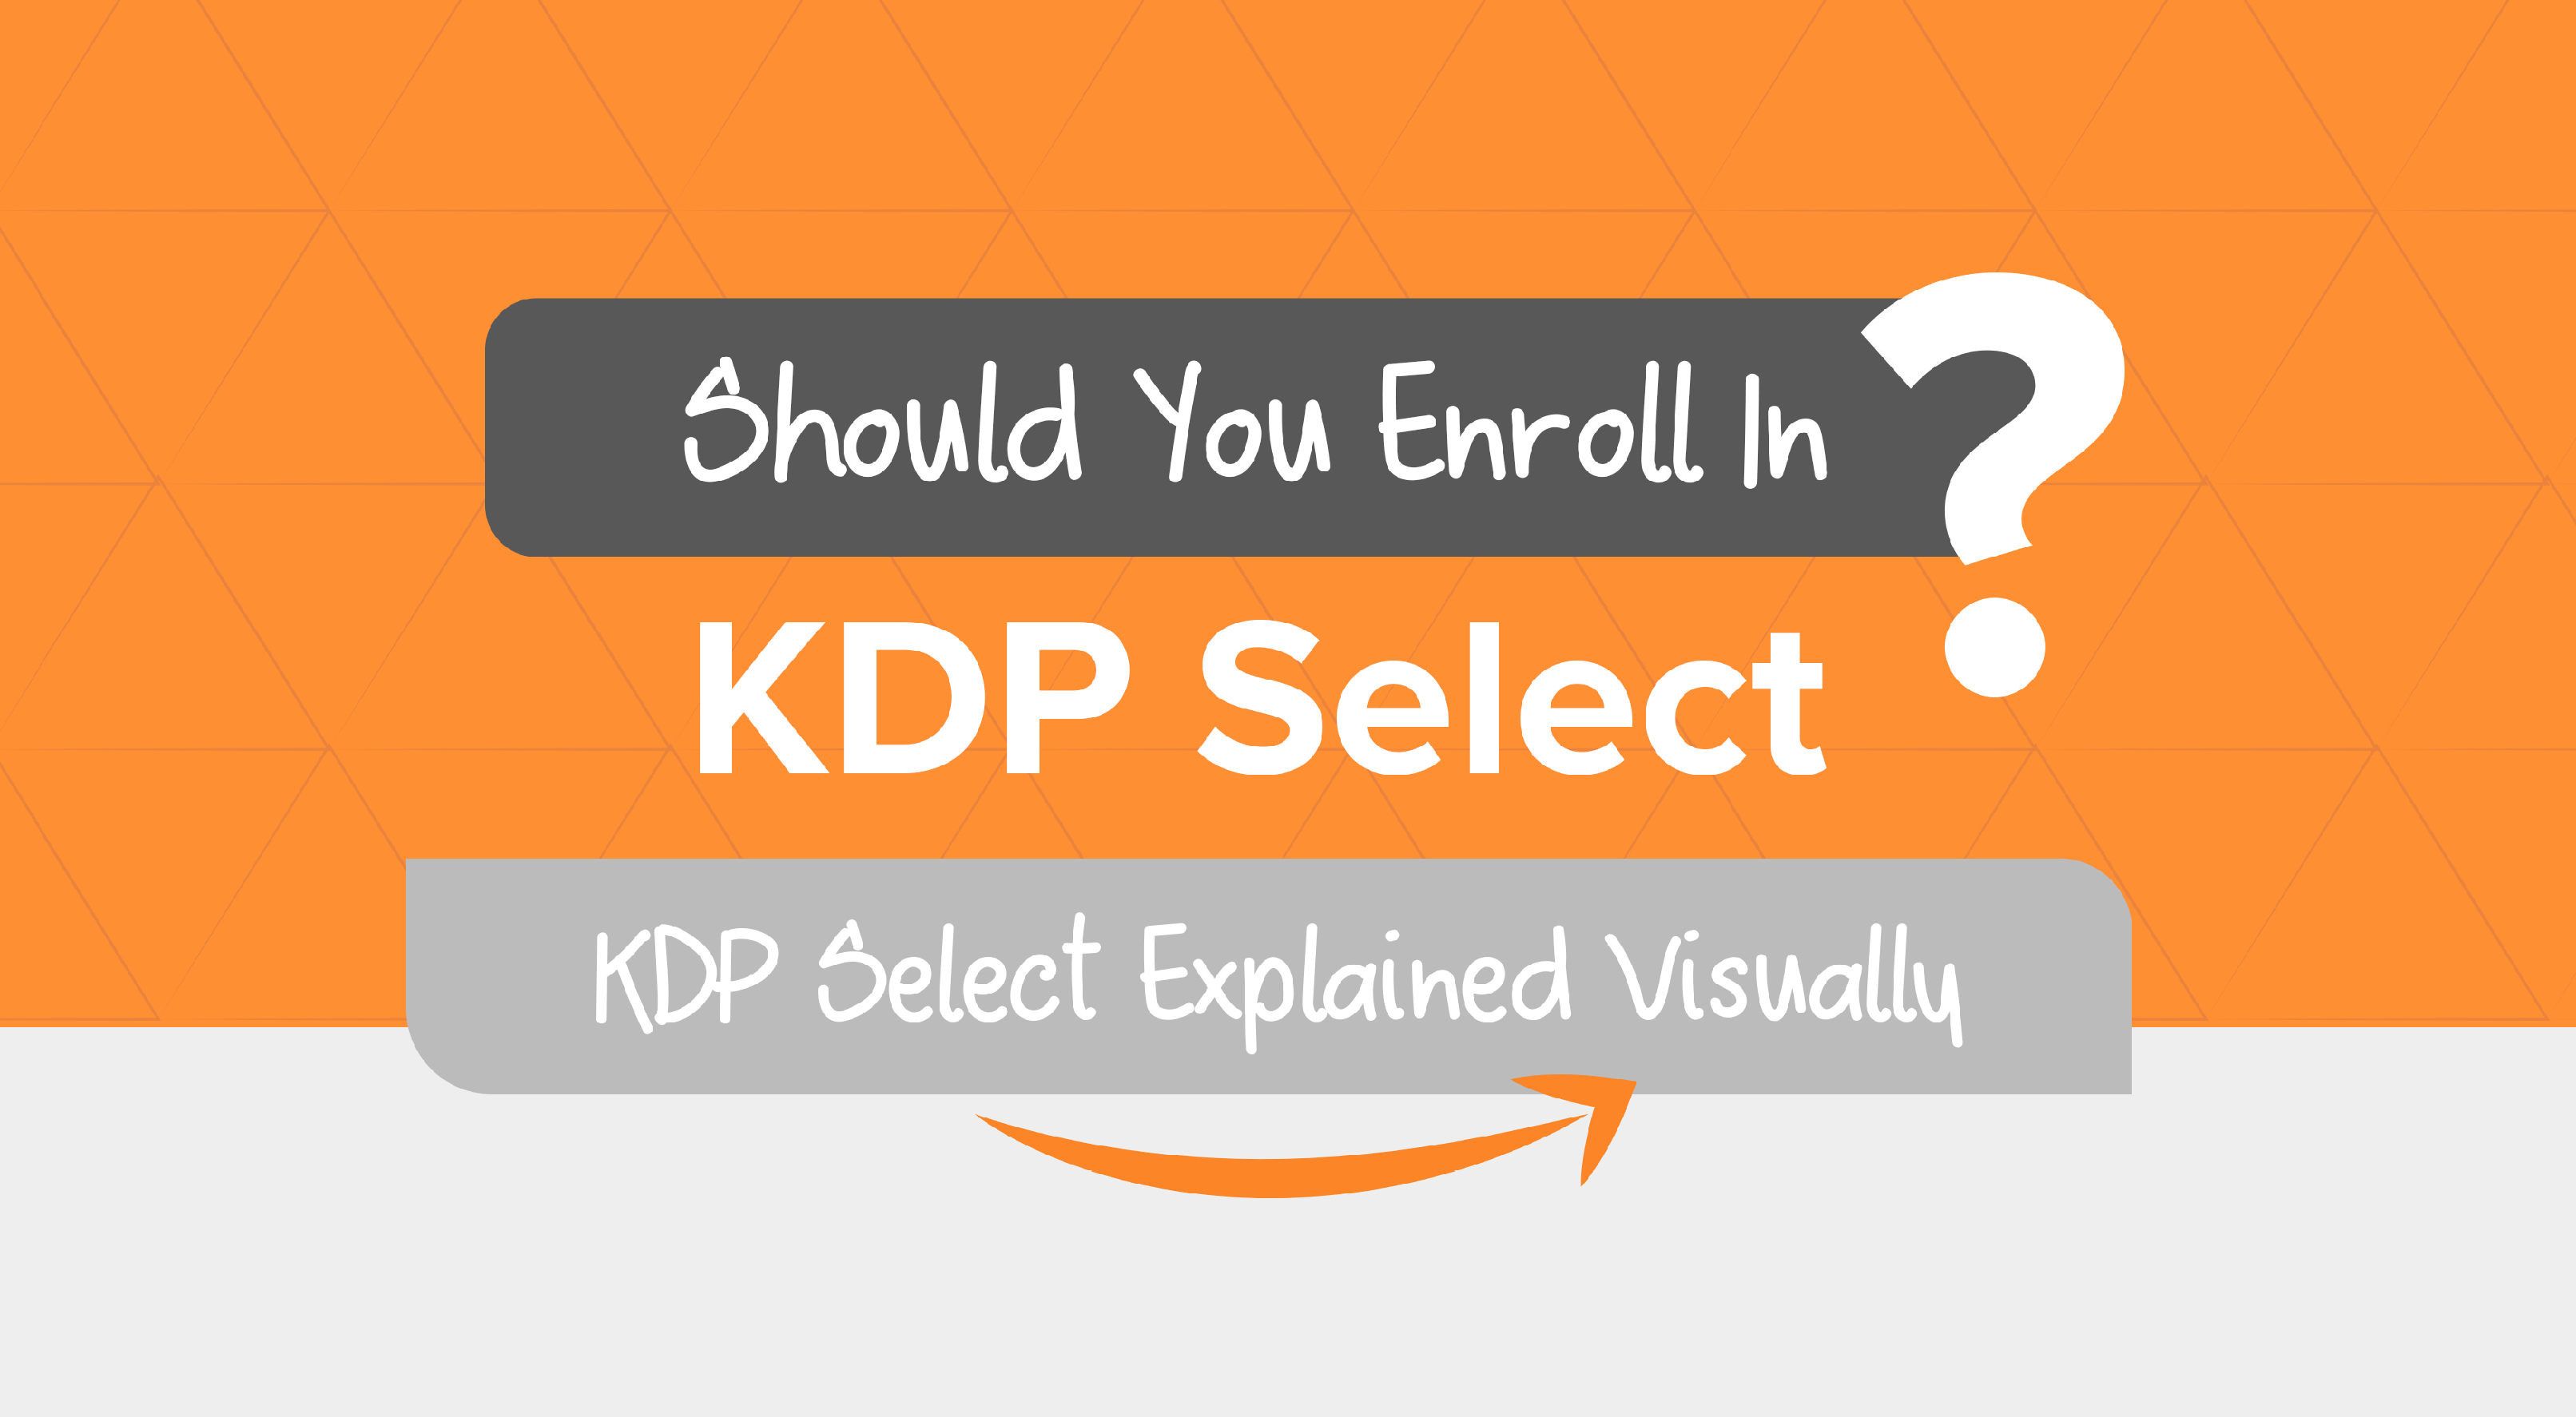 Should You Enroll in KDP Select? KDP Select Explained Visually (Infographic)